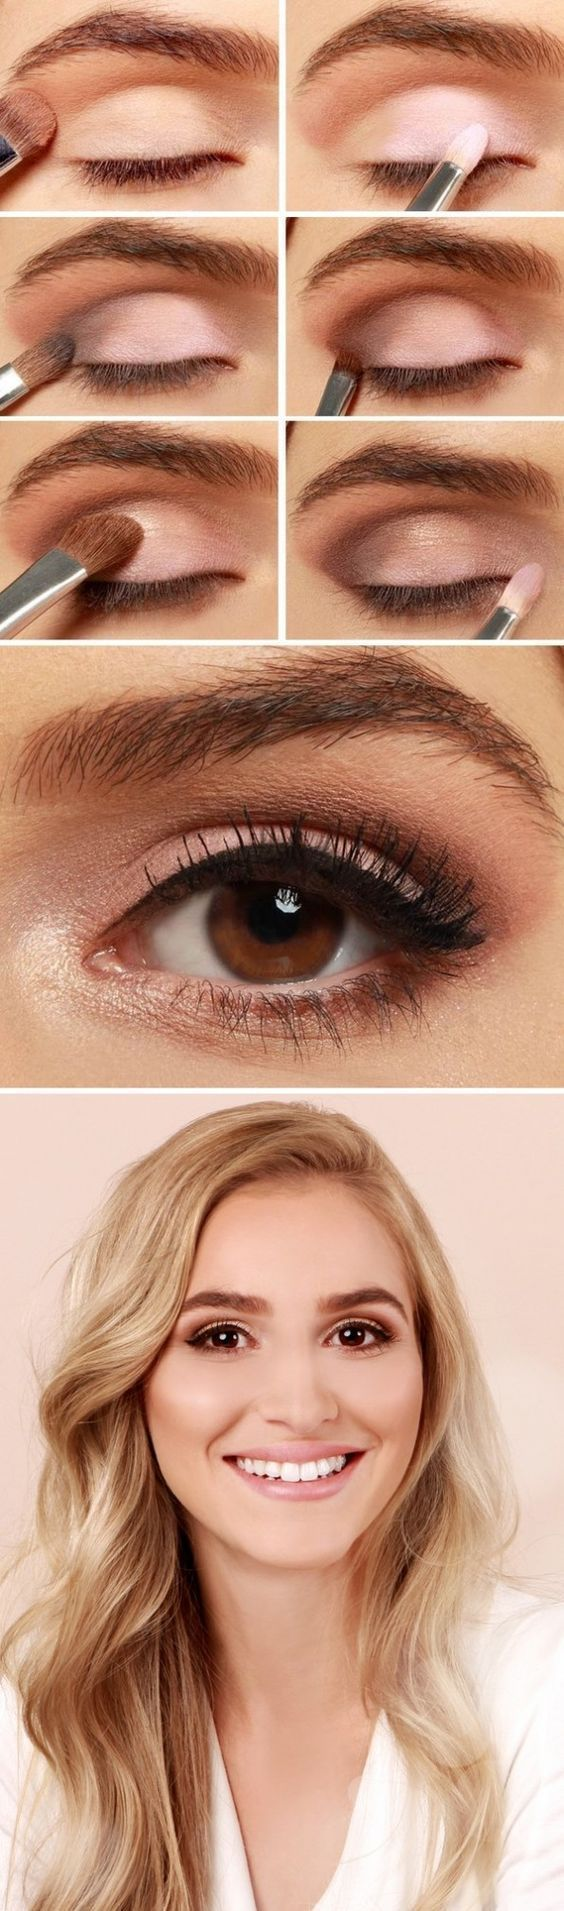 27 pretty makeup tutorials for brown eyes makeup tutorial mac 27 pretty makeup tutorials for brown eyes makeup tutorial mac brown eye makeup tutorial and natural eye make up baditri Gallery